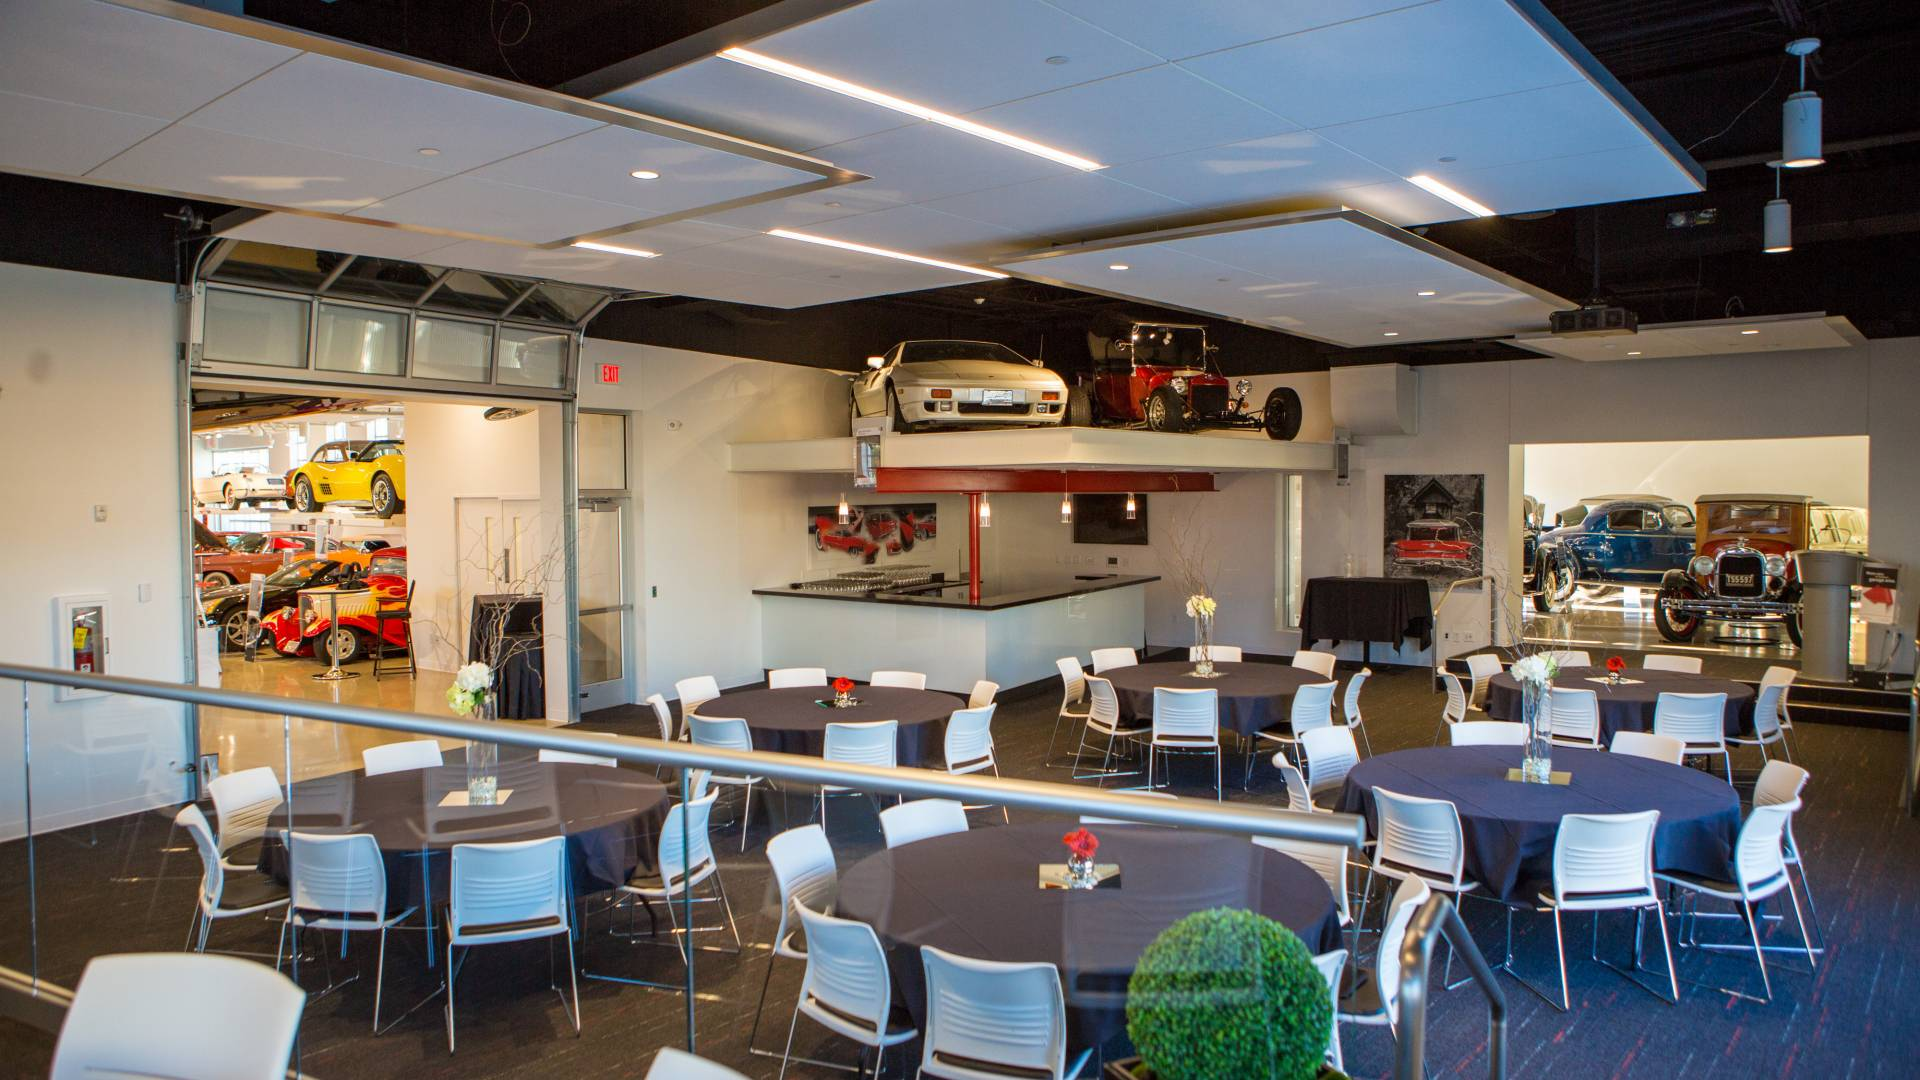 The Automobile Gallery is just one of the many fun and unique meeting space Greater Green Bay has to offer. Get out and explore the city at these attractions with meeting space.